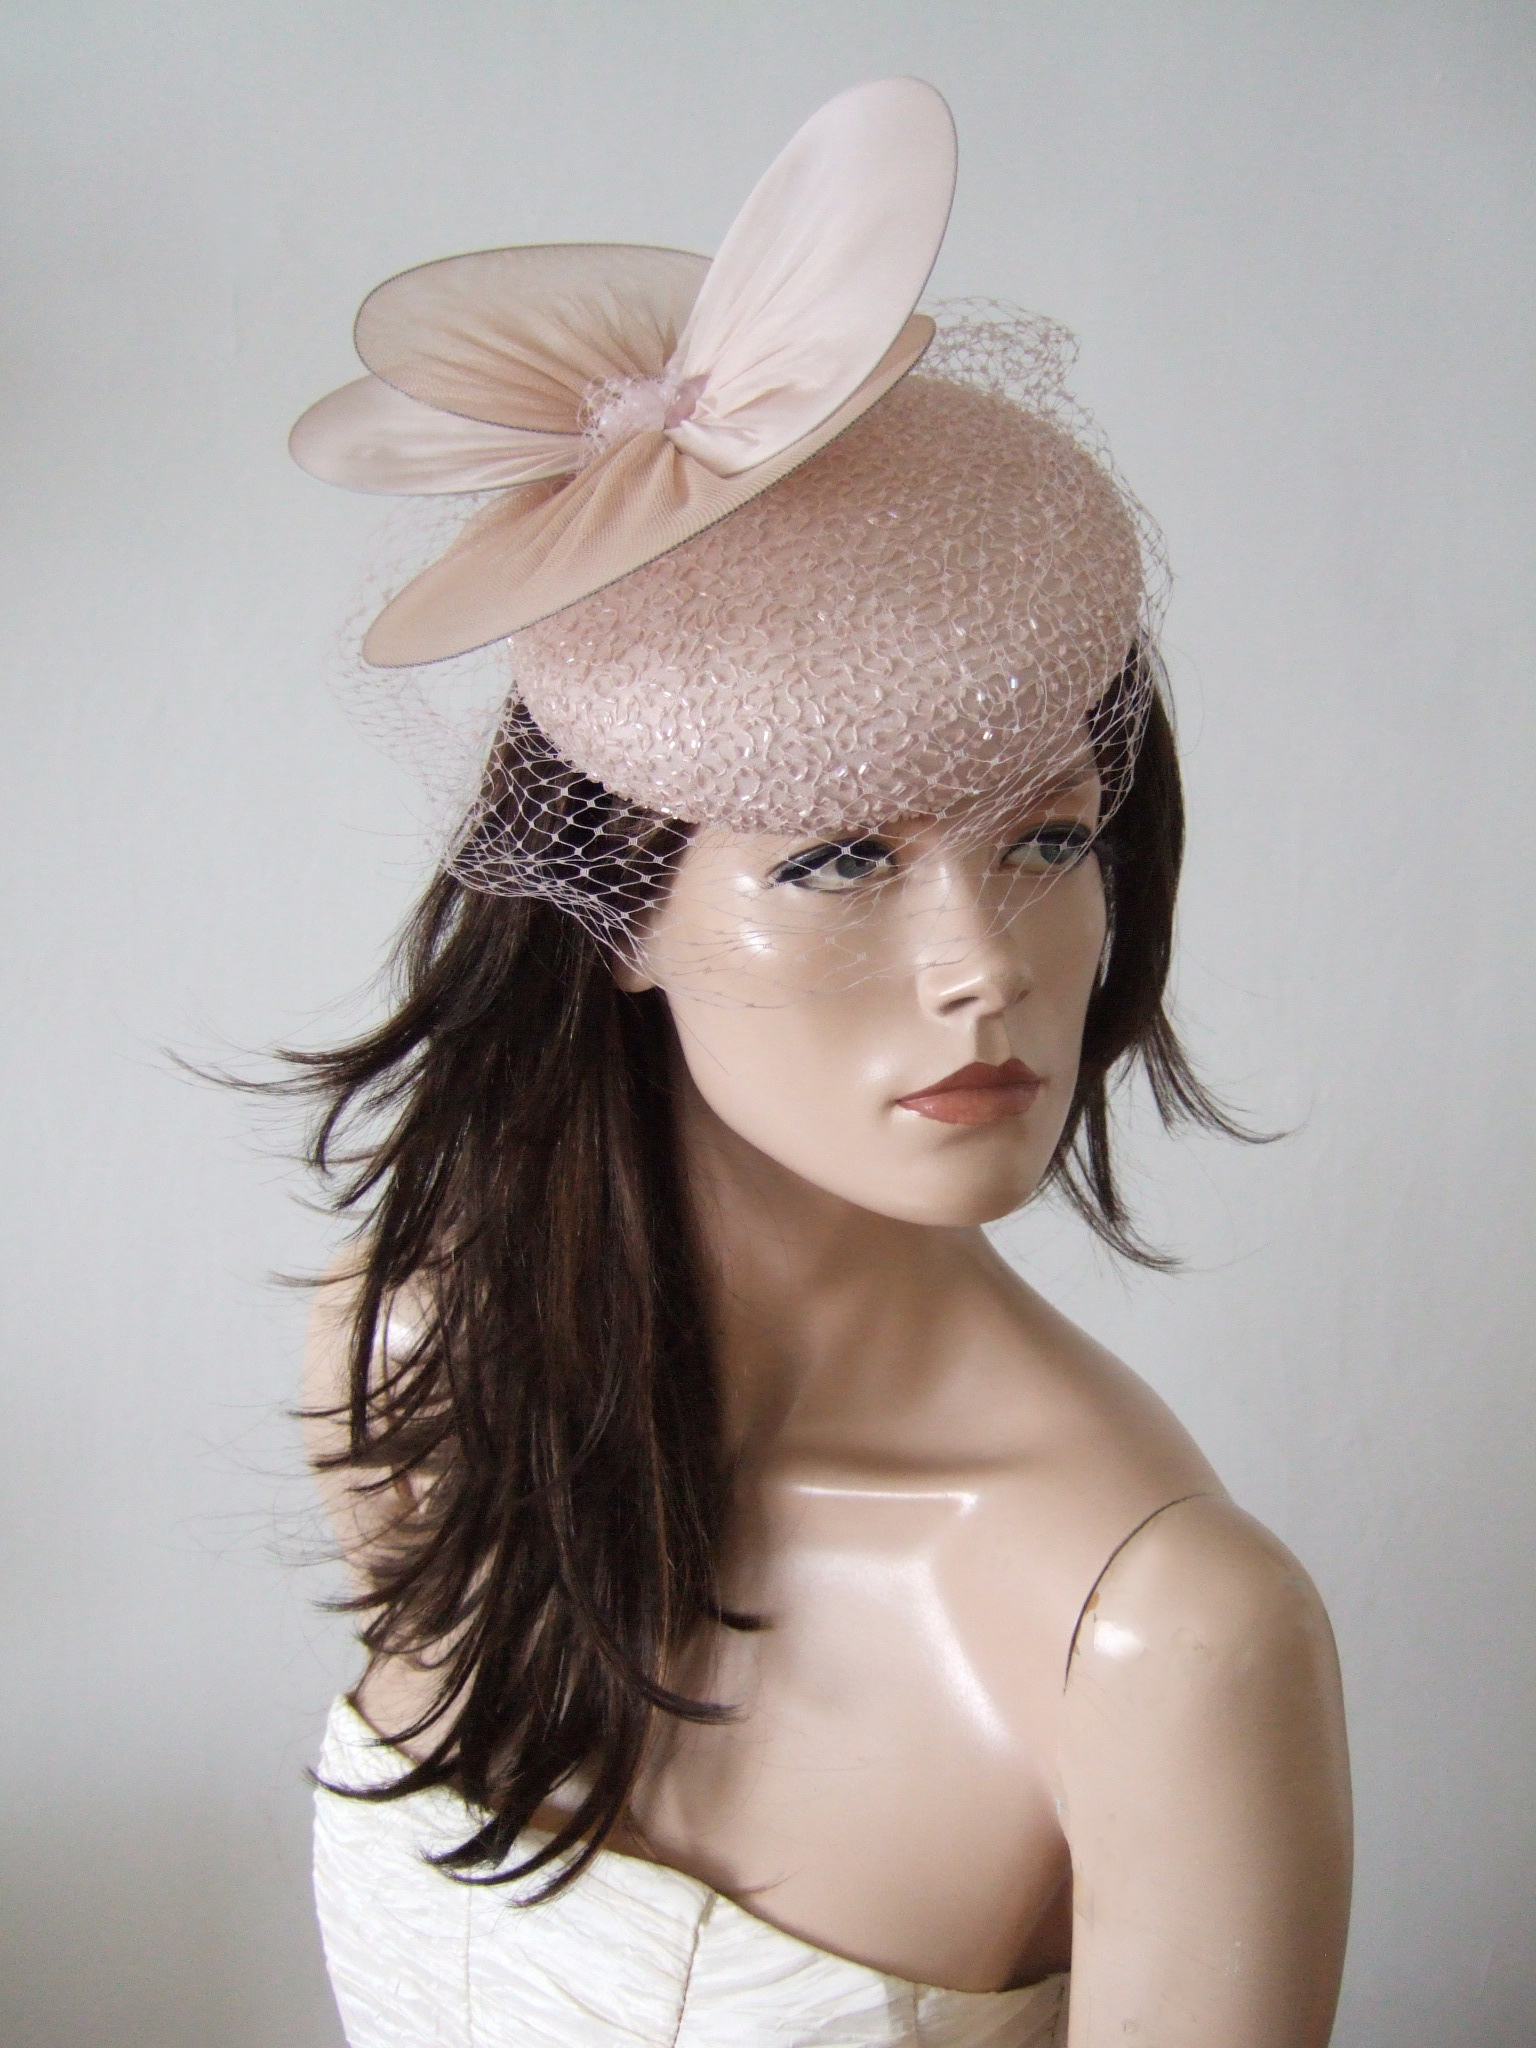 Designer Hats for Hire London. Mother of the Bride Hats 2021. Hats for Wedding Guests UK. Best Royal Ascot Hats 2021. Designer Hats for Hire 2021. Wedding Hats for Hire UK 2021. Hats like Kate Middleton wears. Blush Pink Hats for the Races. Mother of the Bride Hat Hire 2020. Fascinators like Kate Middleton wears. Jane Taylor Wedding Hats.